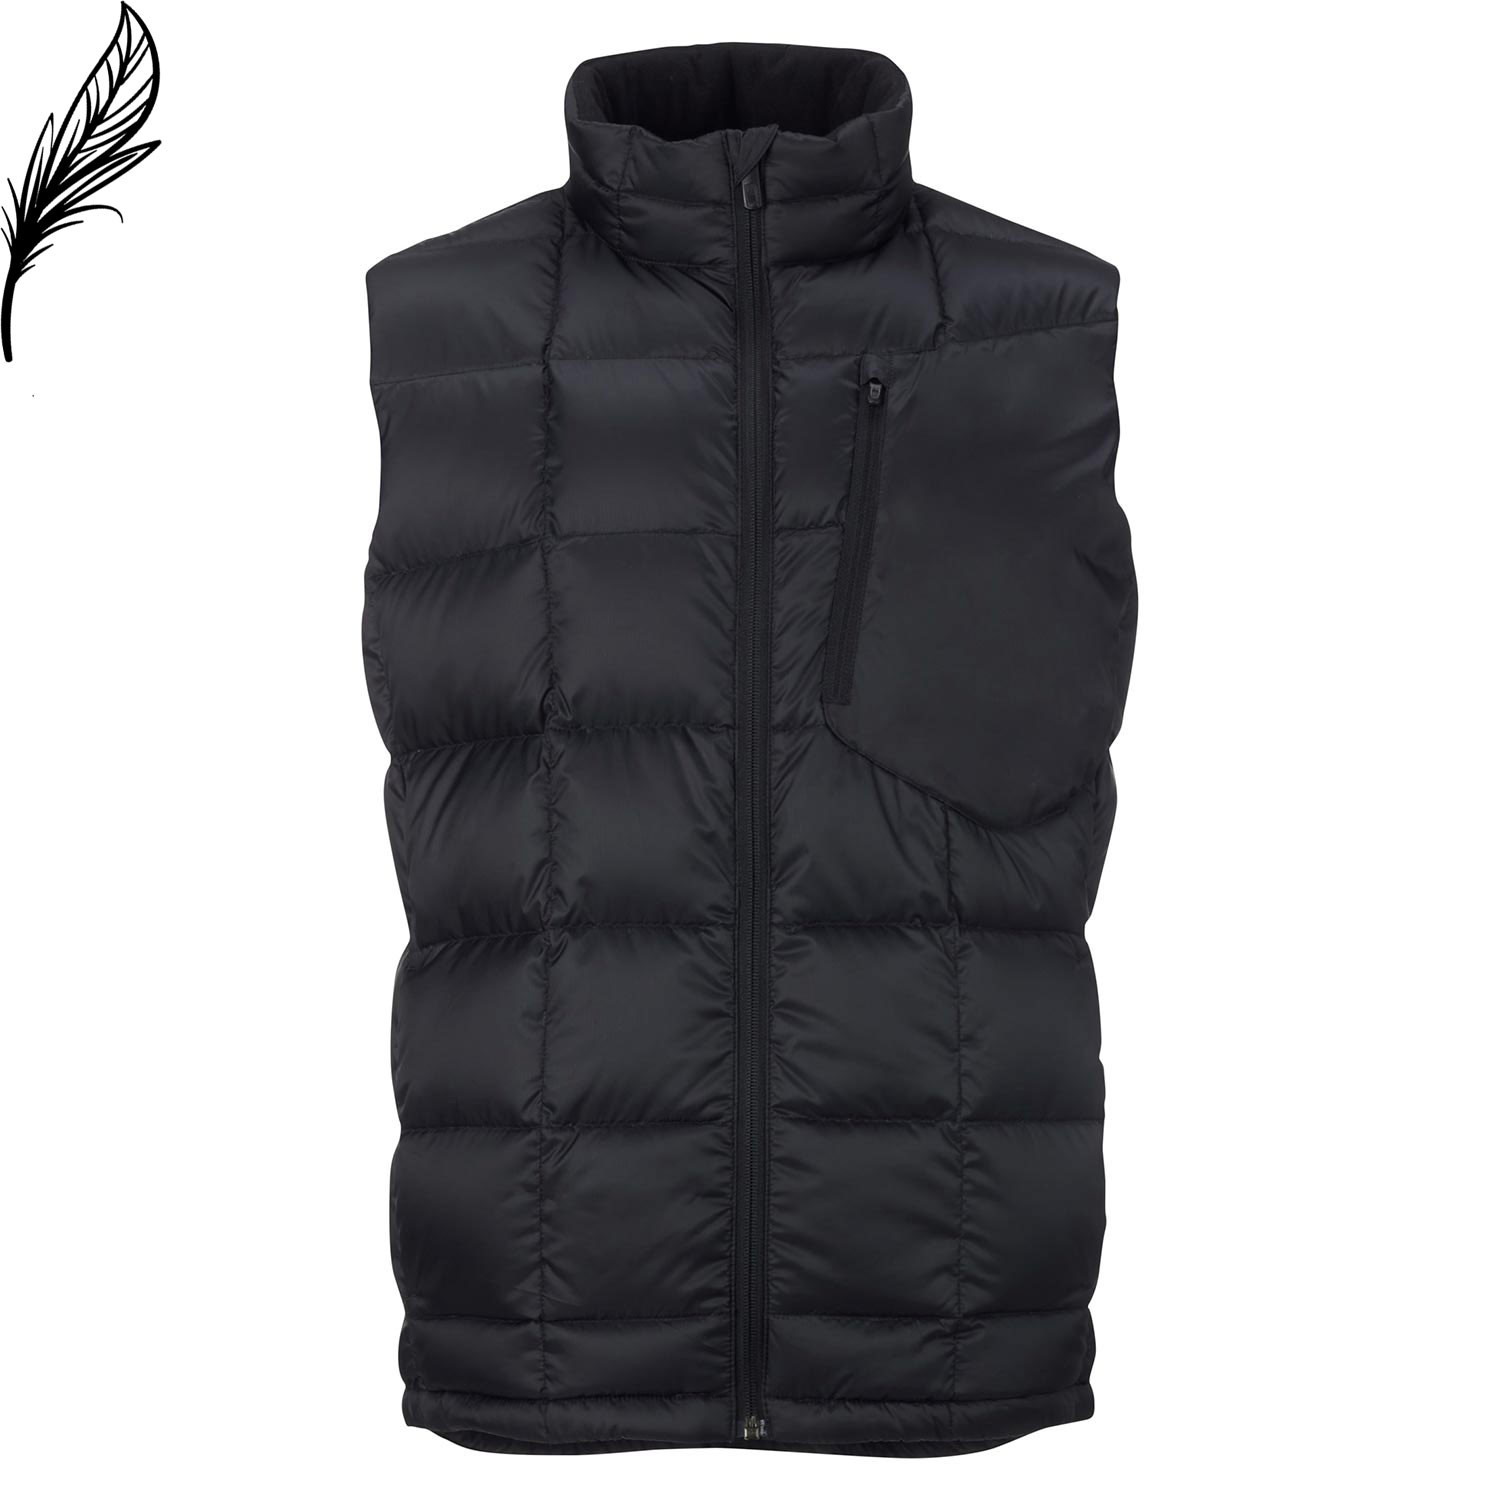 Bunda Burton Ak Bk Insulator Vest true black